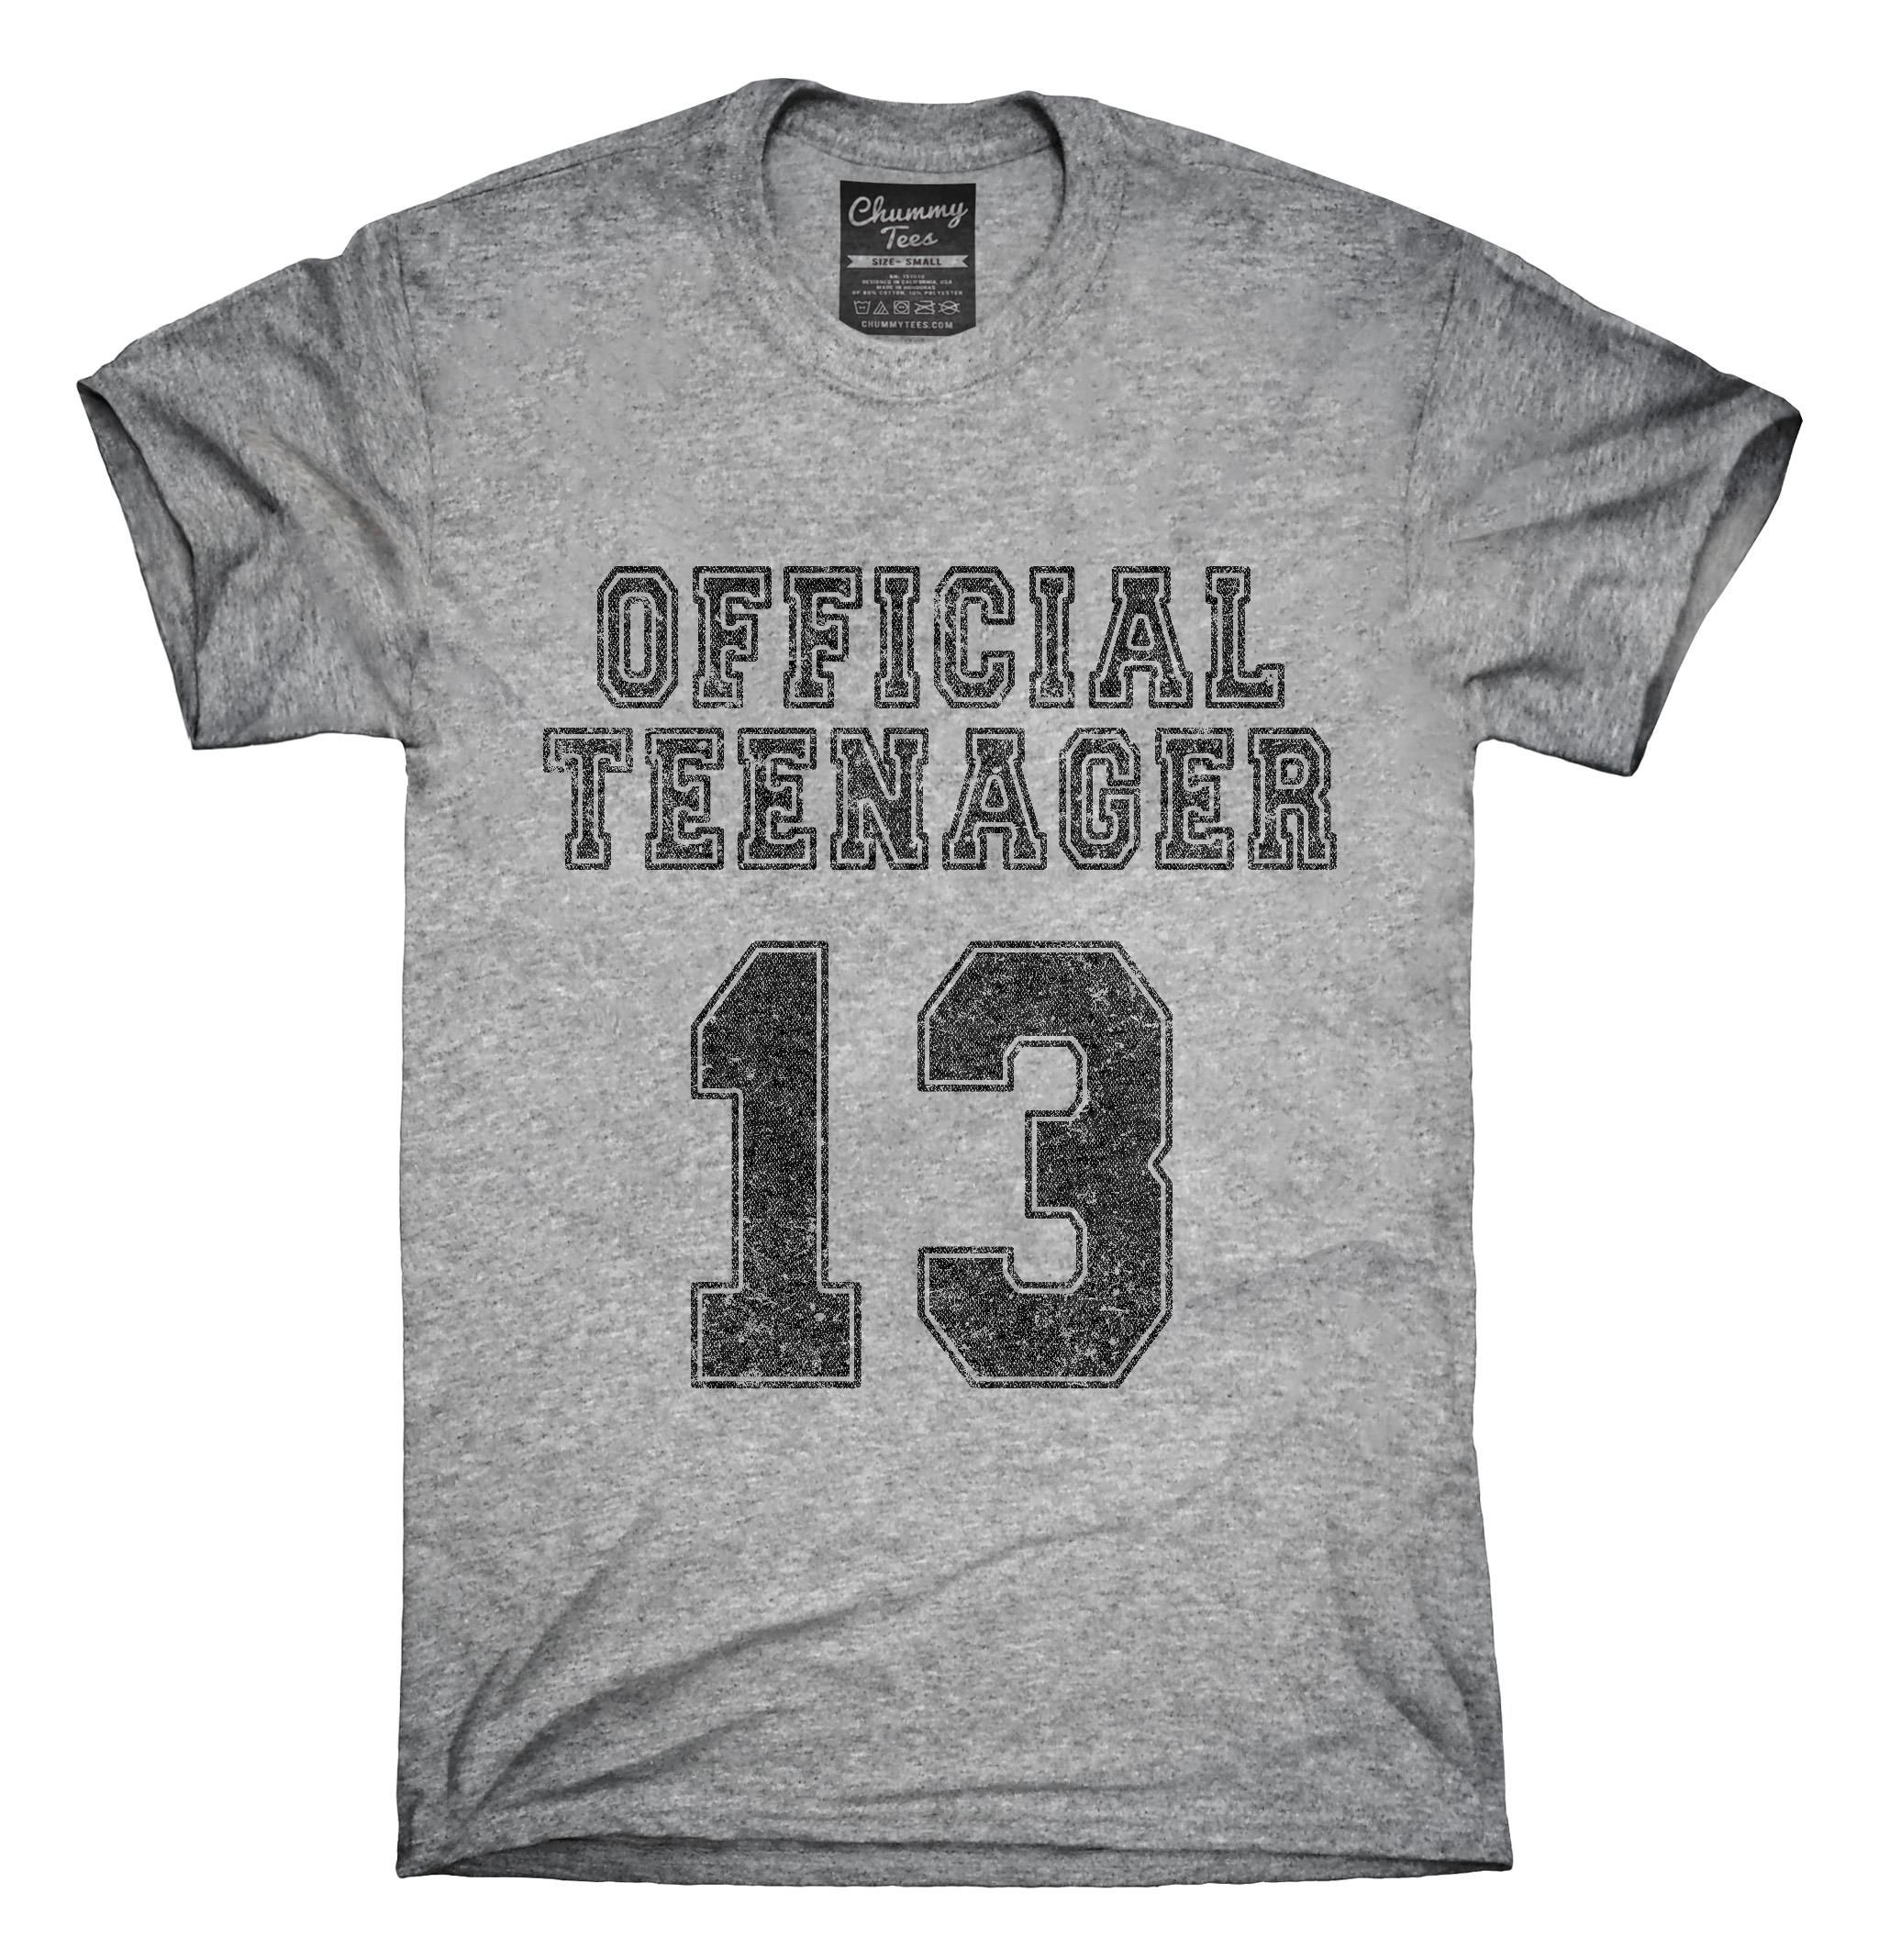 You Can Order This Official Teenager Funny 13th Birthday T Shirt Design On Several Different Sizes Colors And Styles Of Shirts Including Short Sleeve